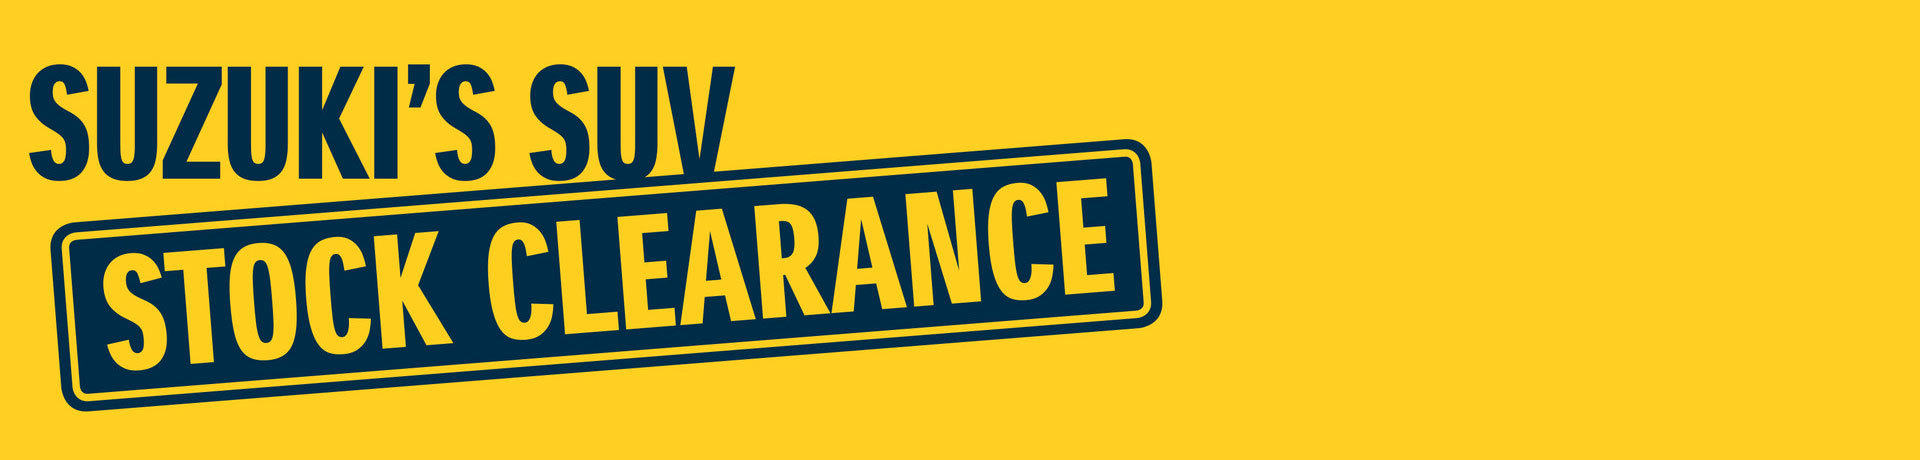 Suzuki - National Offer - Suzuki's SUV Stock Clearance